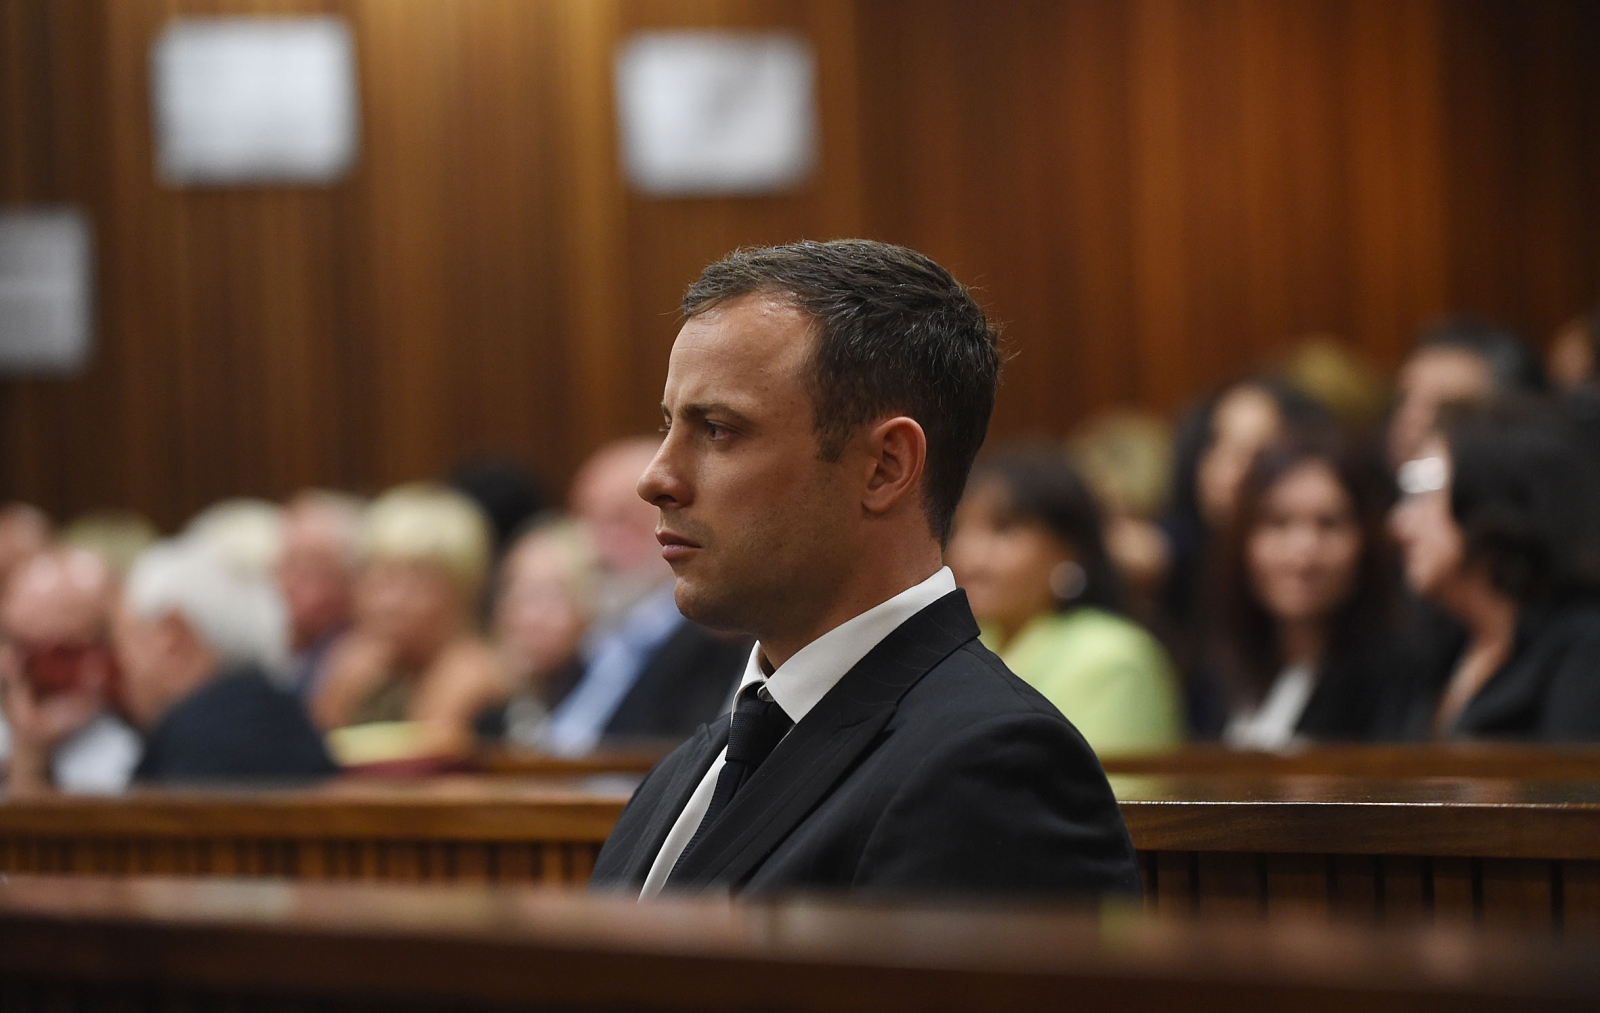 Oscar Pistorius in the courtroom listening to the judgement in the murder trial